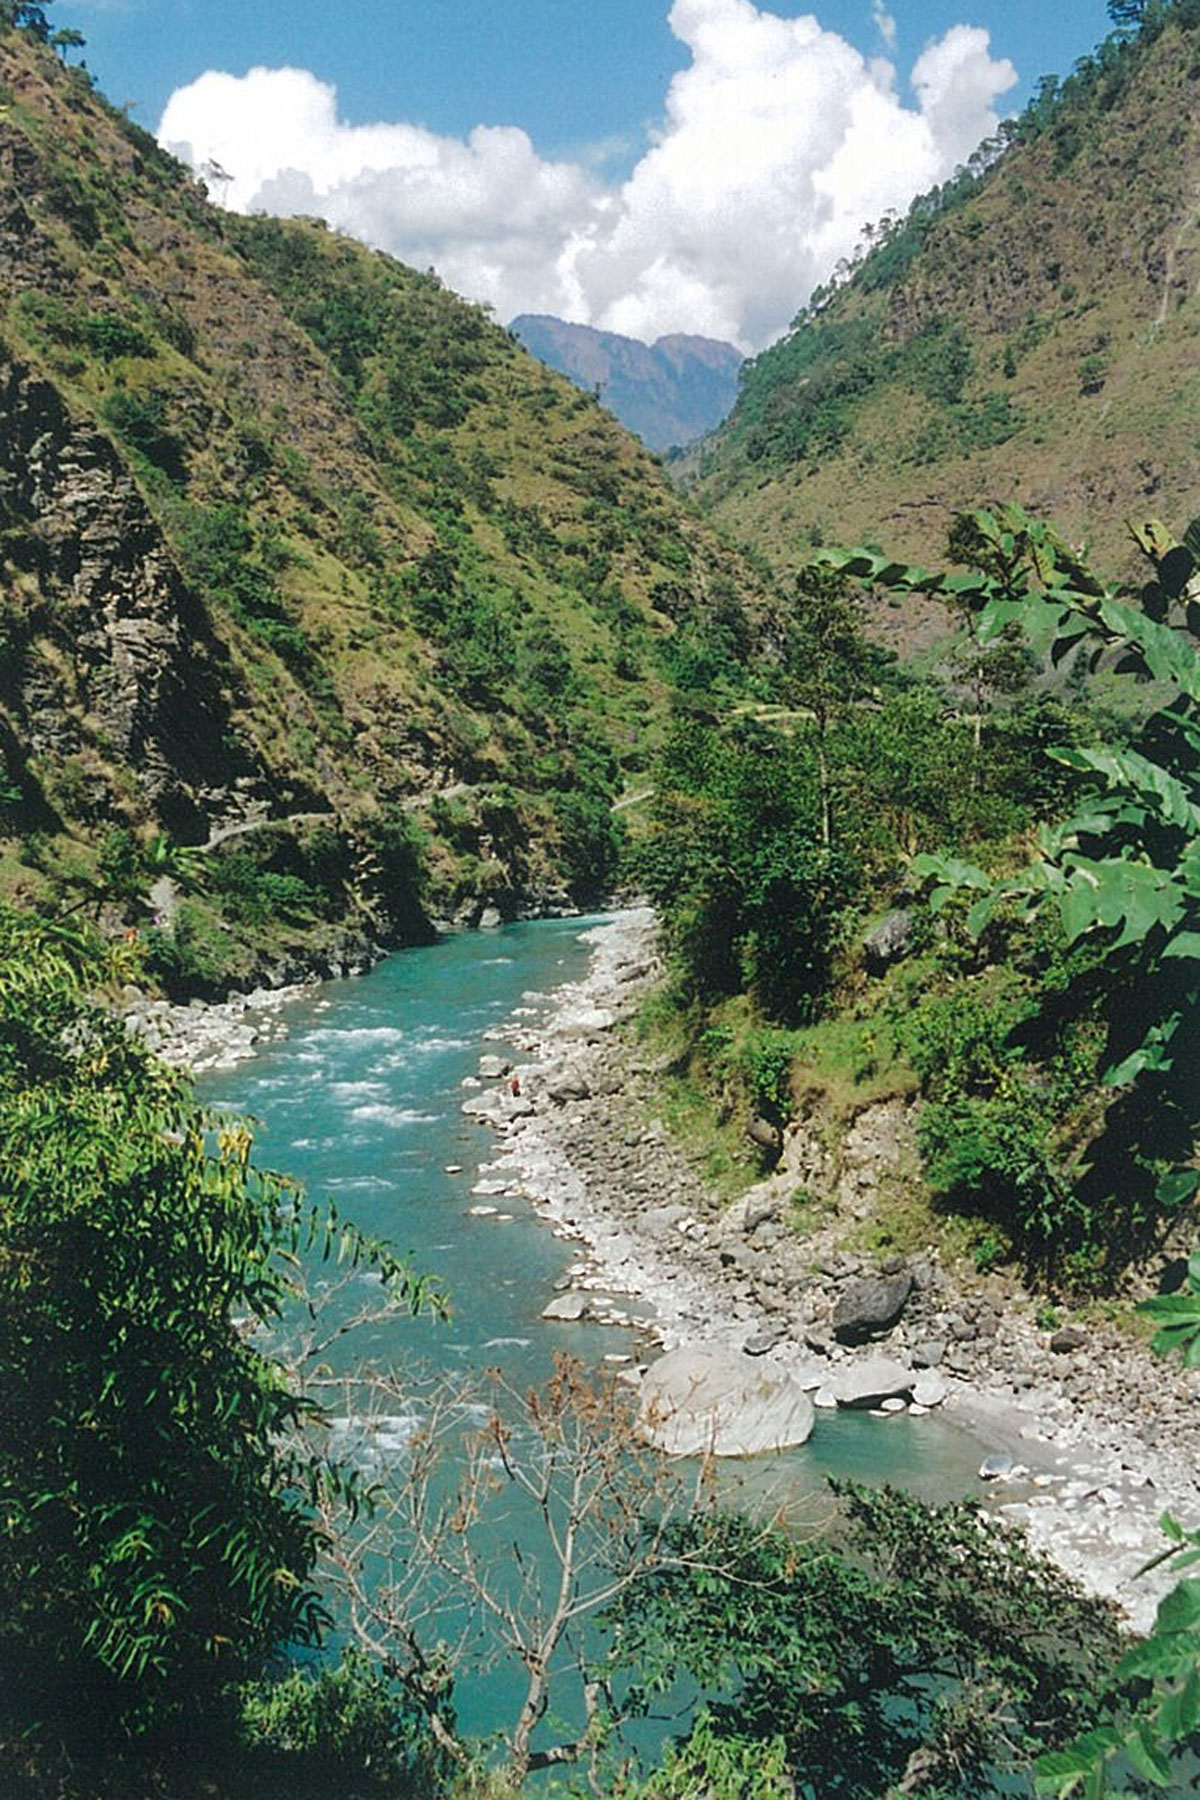 Mountain River Panch Pokhari Trek Trekking Hike Hiking Nepal